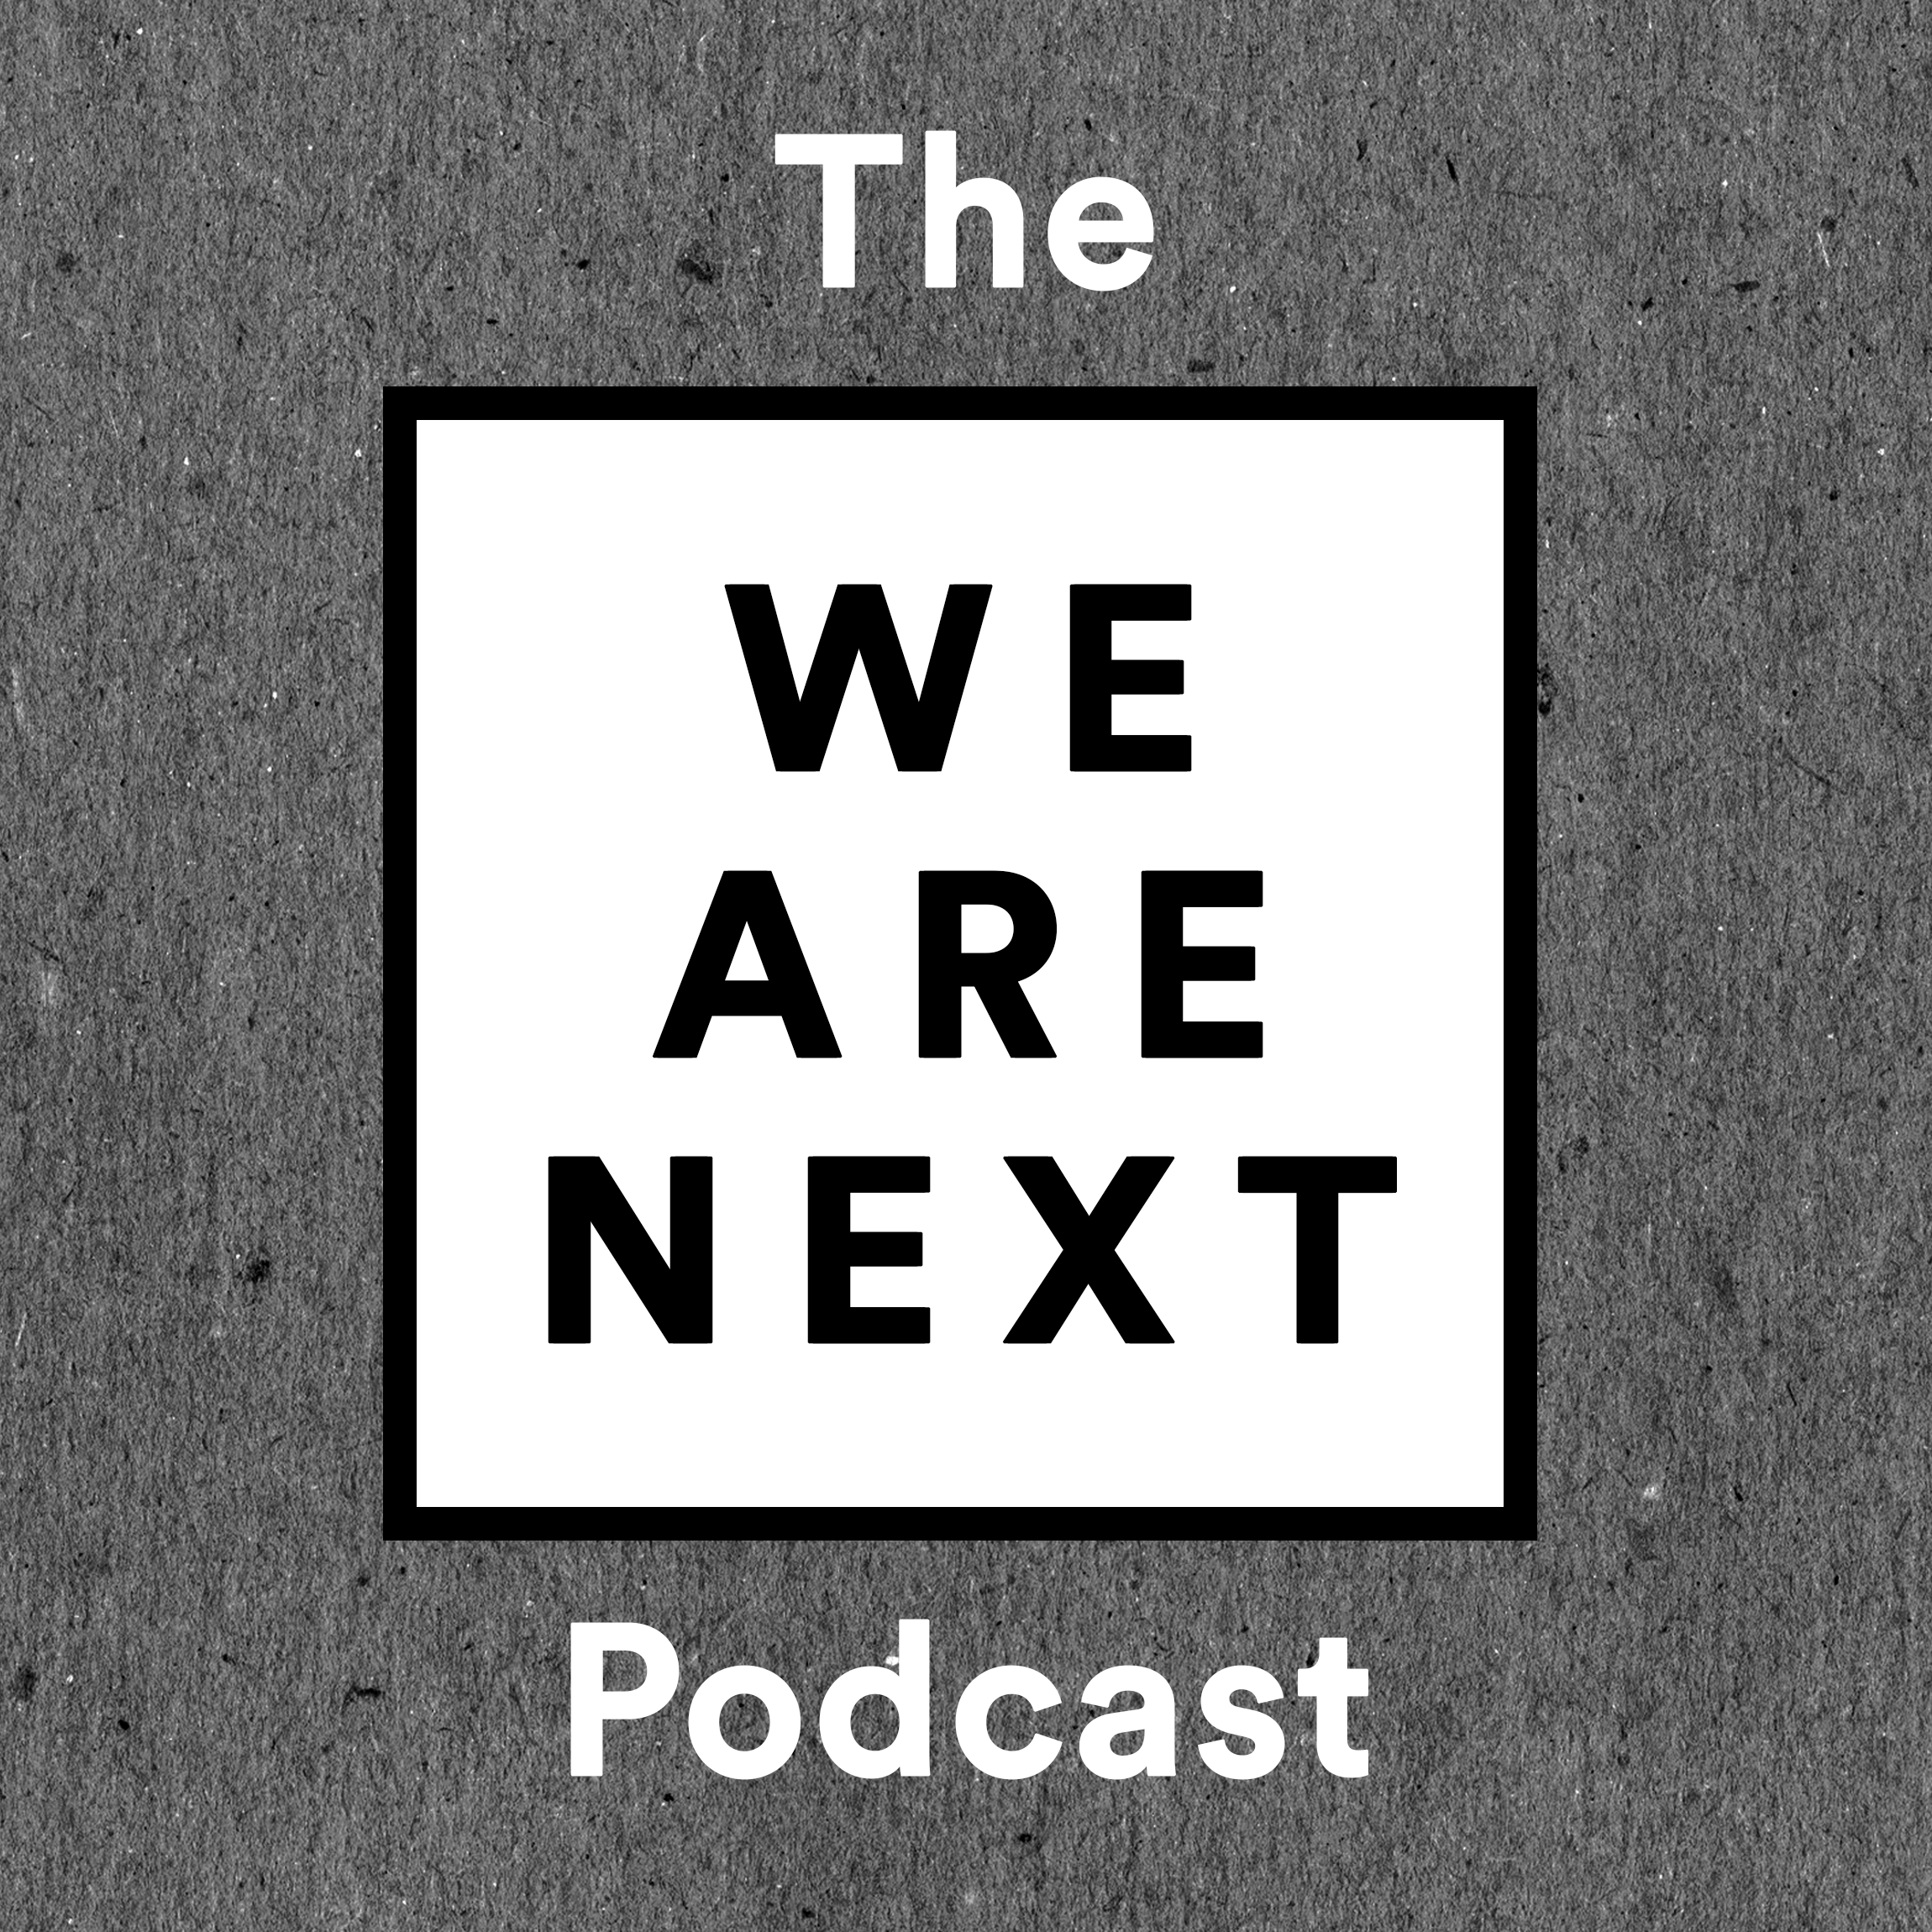 We-Are-Next-Podcast-Artwork_FINAL.png